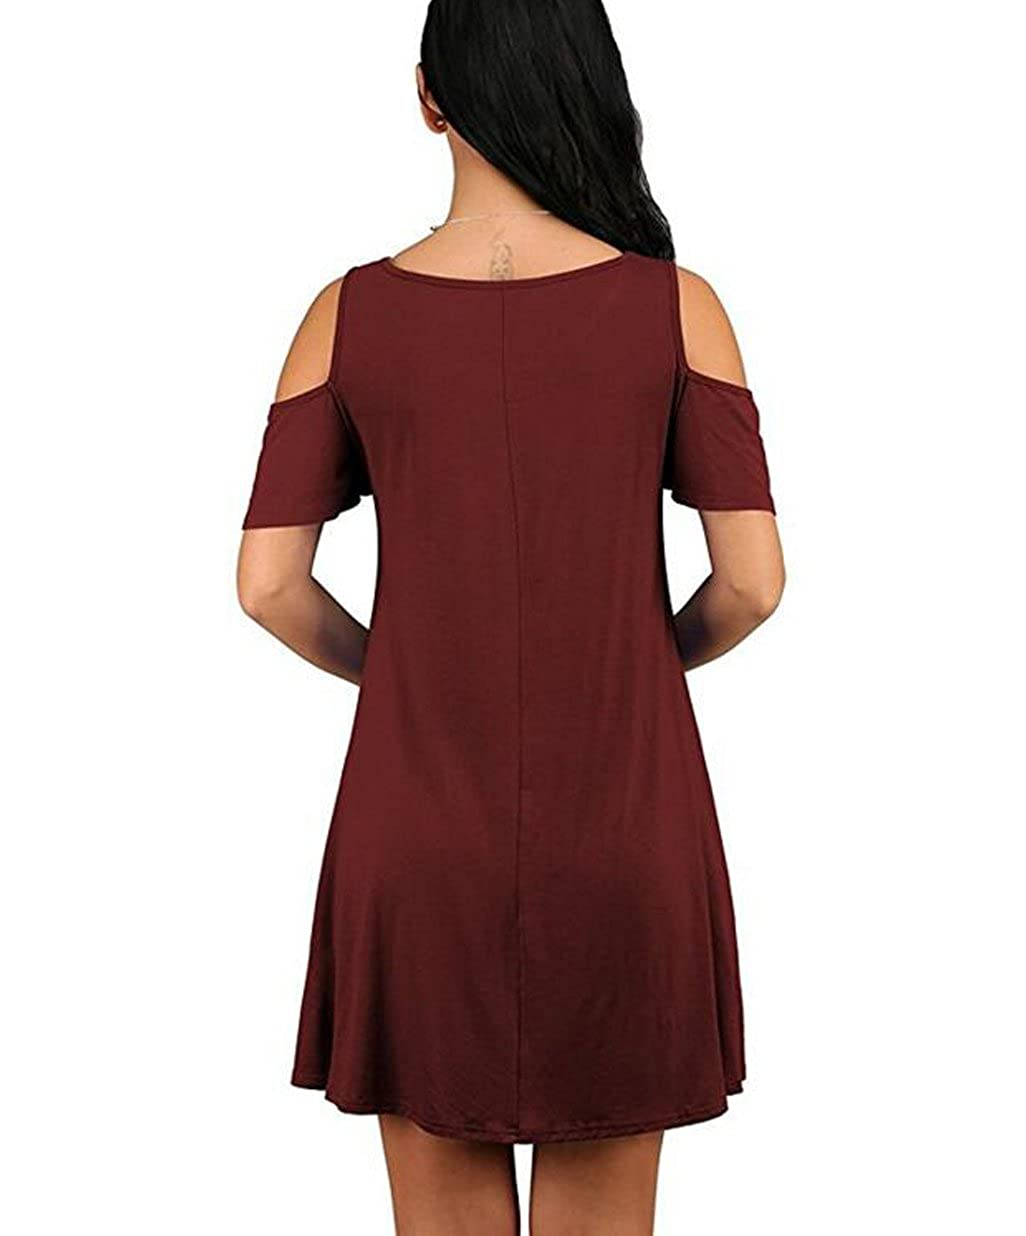 3d801078234 GABREBI Women s Sexy Casual T-Shirt Drsses Cold Shoulder Tunic Plus Size  Top Swing Dress Sundresses With Pockets at Amazon Women s Clothing store